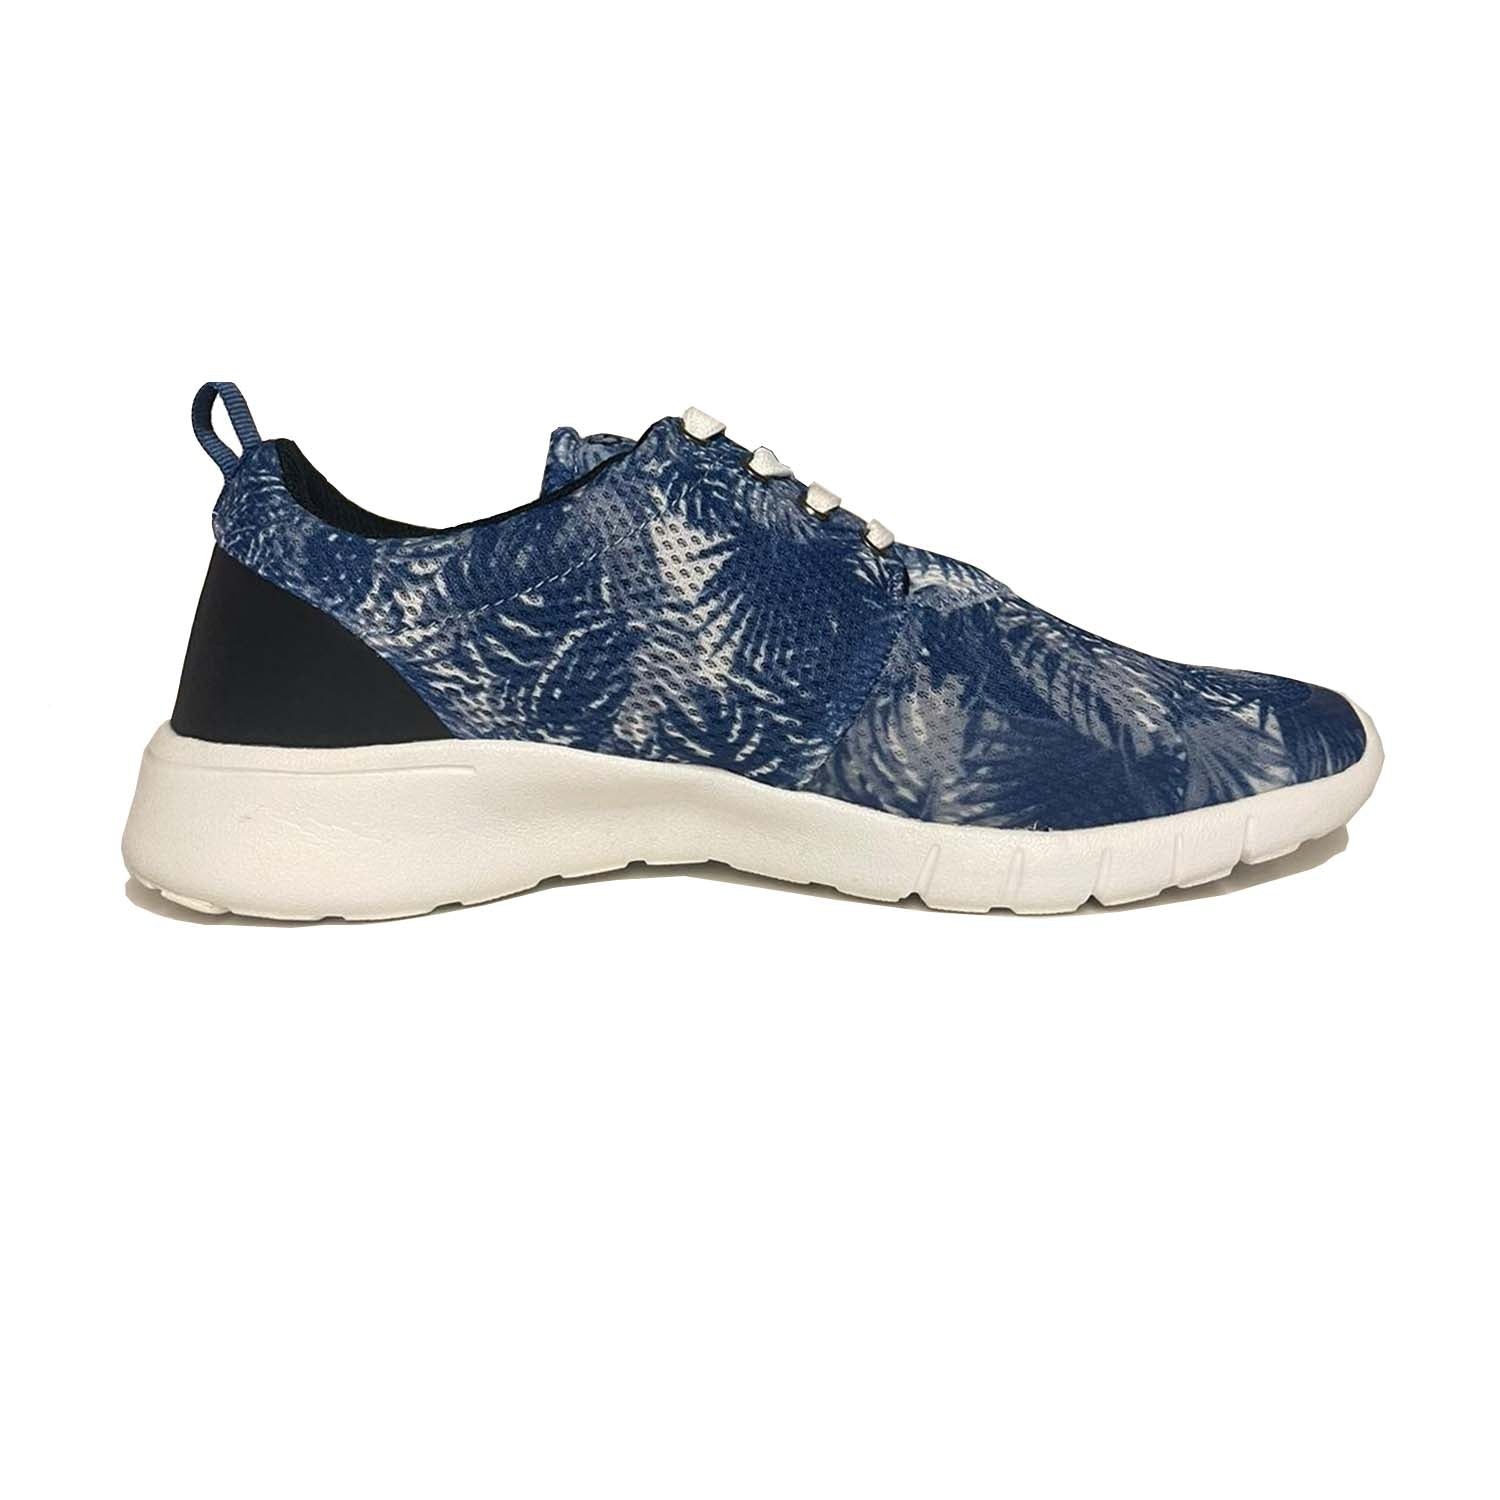 Guess Jedd Print Detail Lace up Mesh Trainer